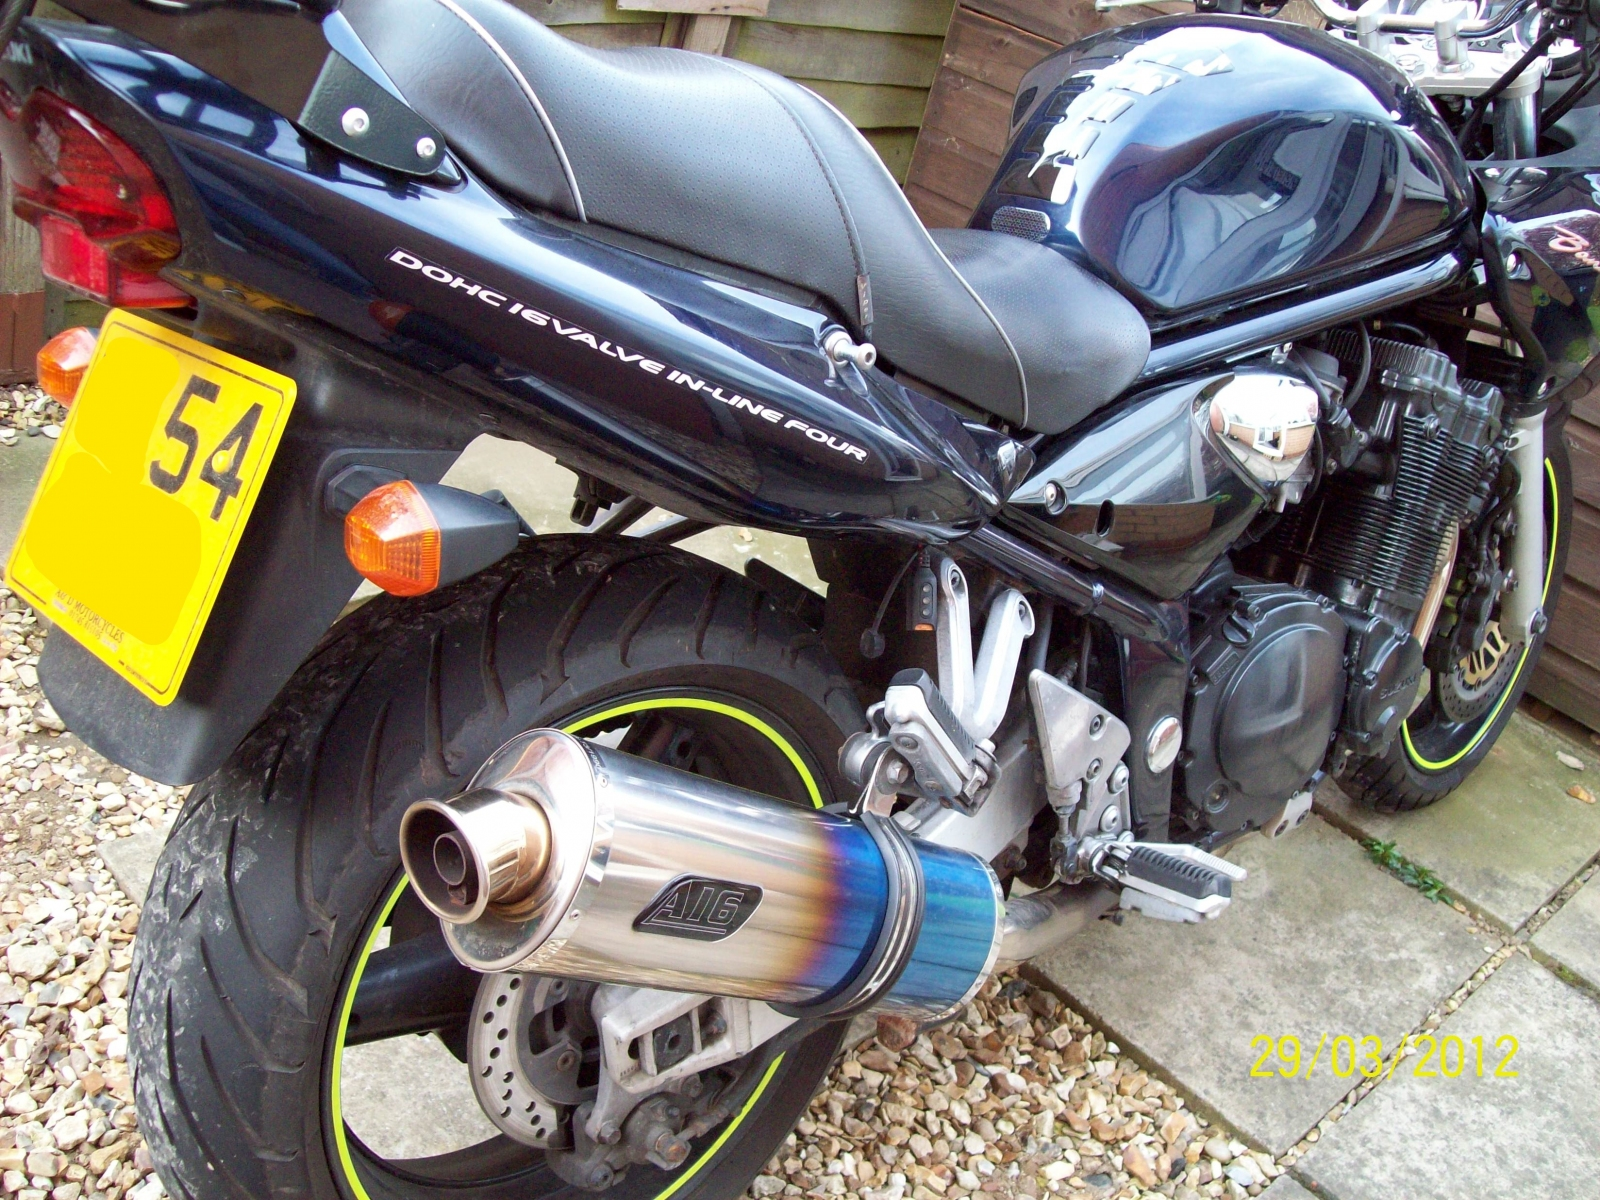 """Suzuki GSF 1200 Bandit <p>A16 Road Legal Coloured Titanium Exhaust with Traditional Spout</p><br /><a href=""""https://a16roadnracesupplies.co.uk/product/a16-suzuki-exhausts/"""">Buy now!</a>"""